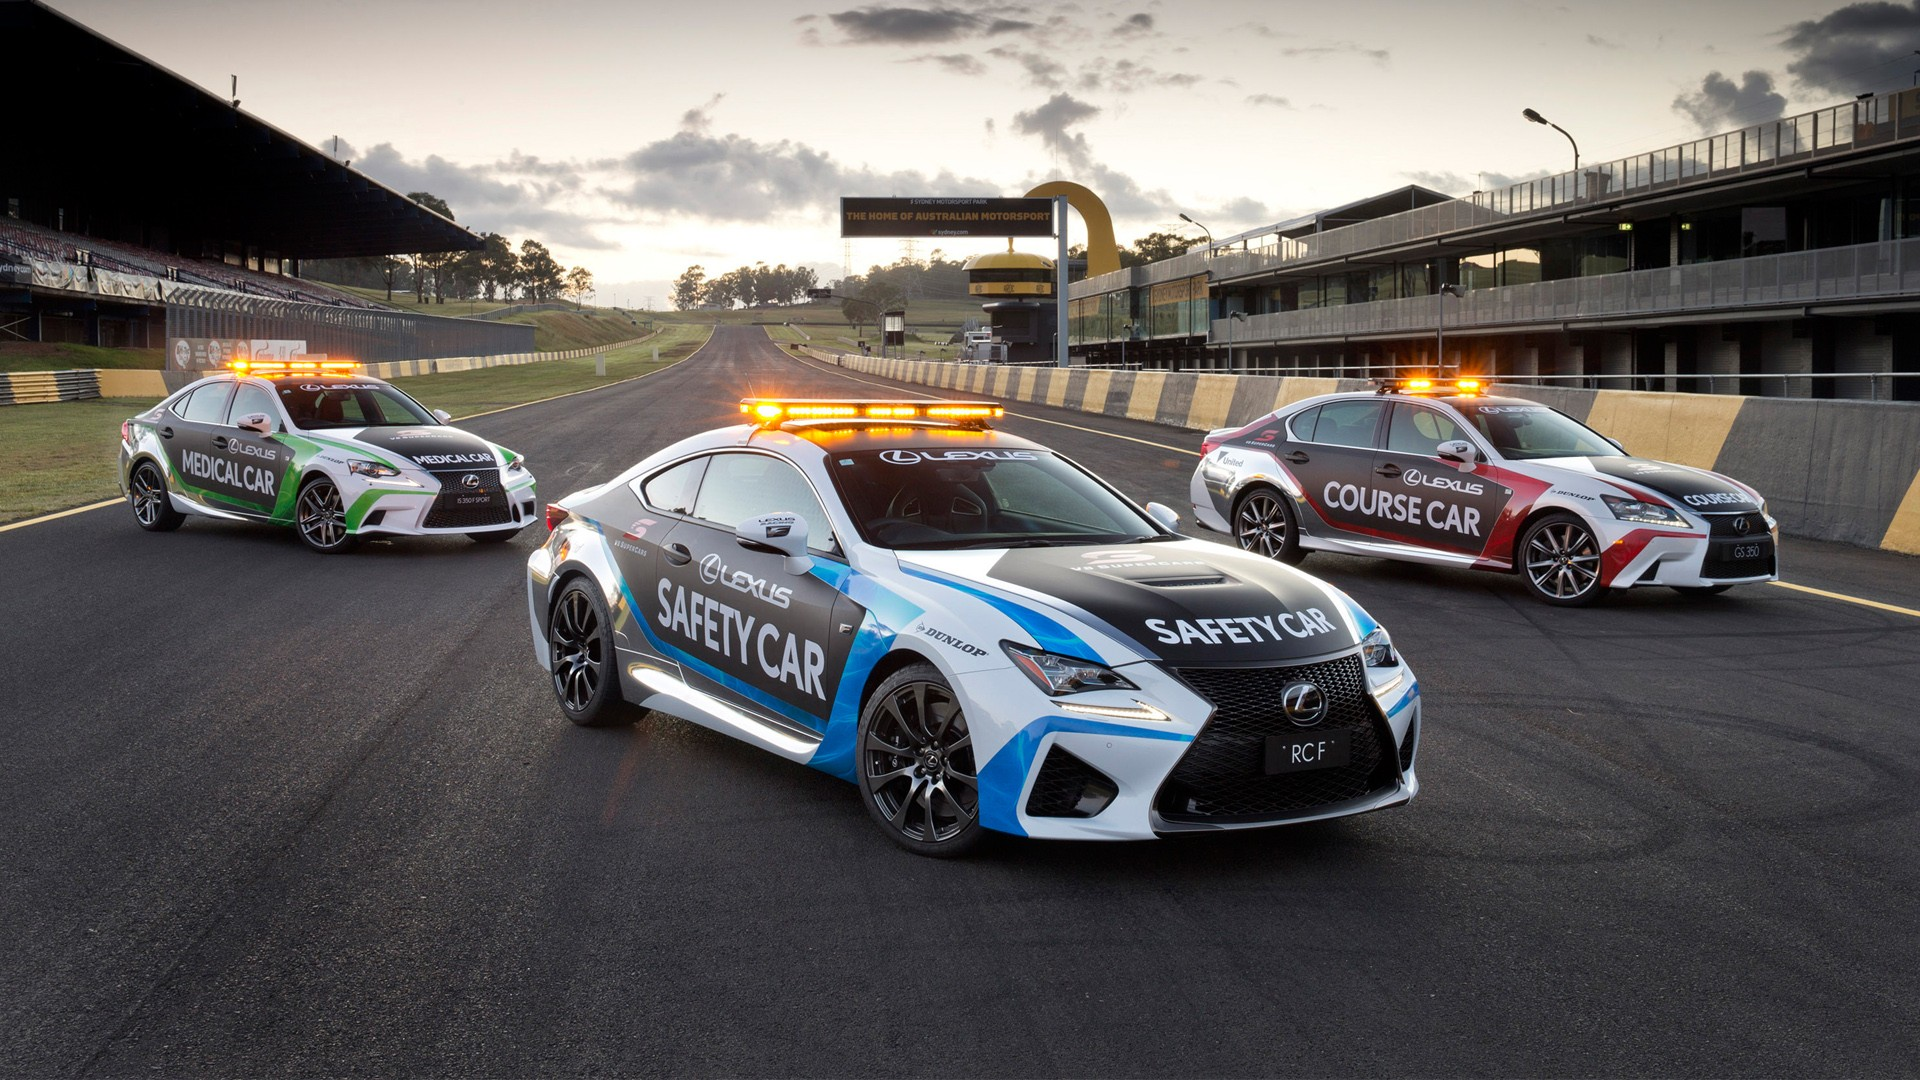 Lexus V8 Supercars 2015 Wallpaper | HD Car Wallpapers